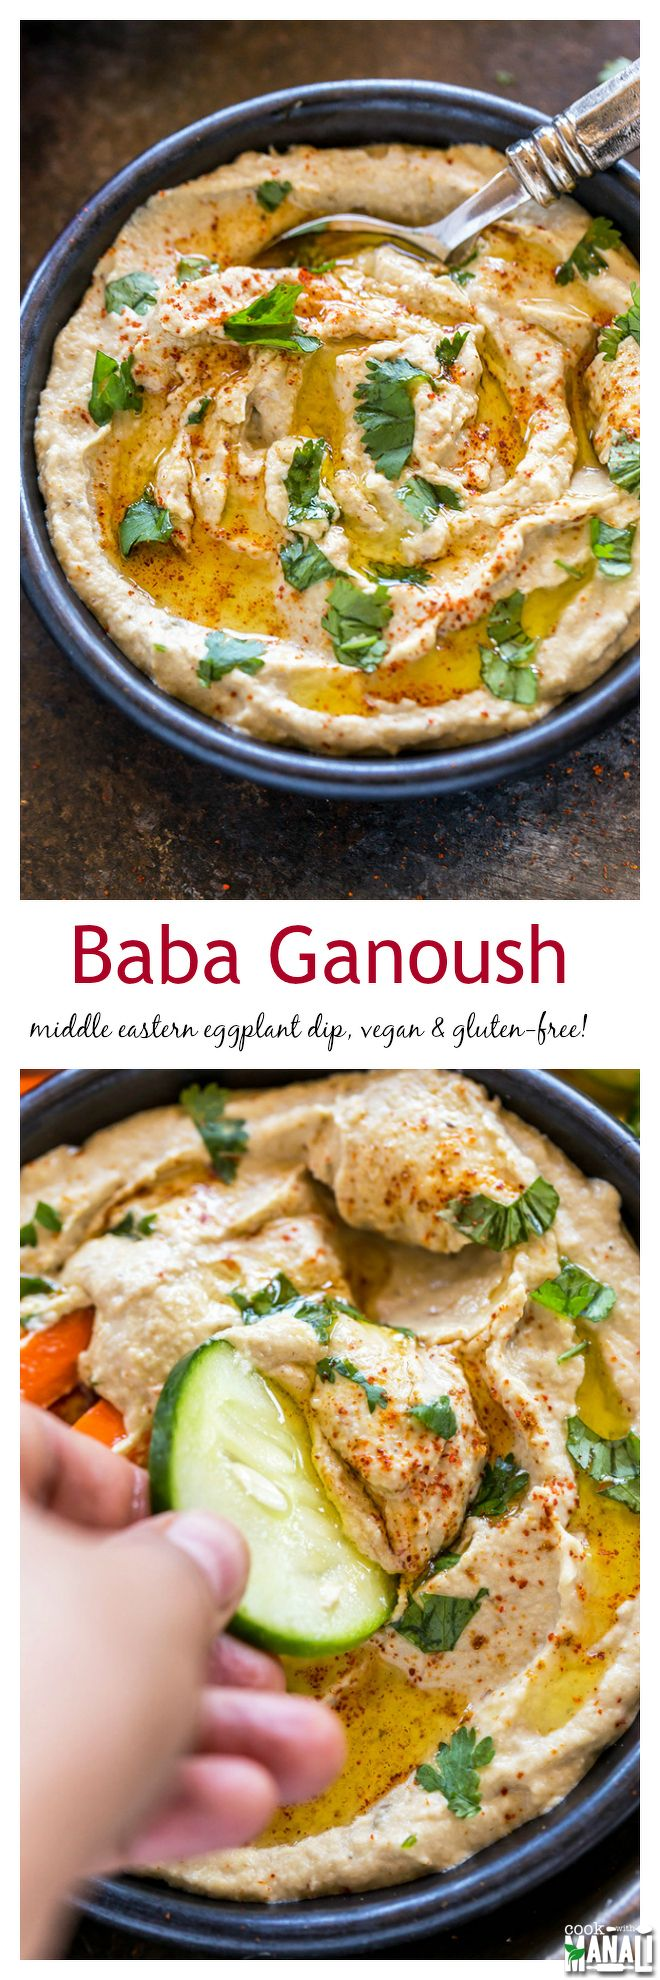 Baba Ganoush is a popular Middle Eastern eggplant dip. Enjoy it with fresh…